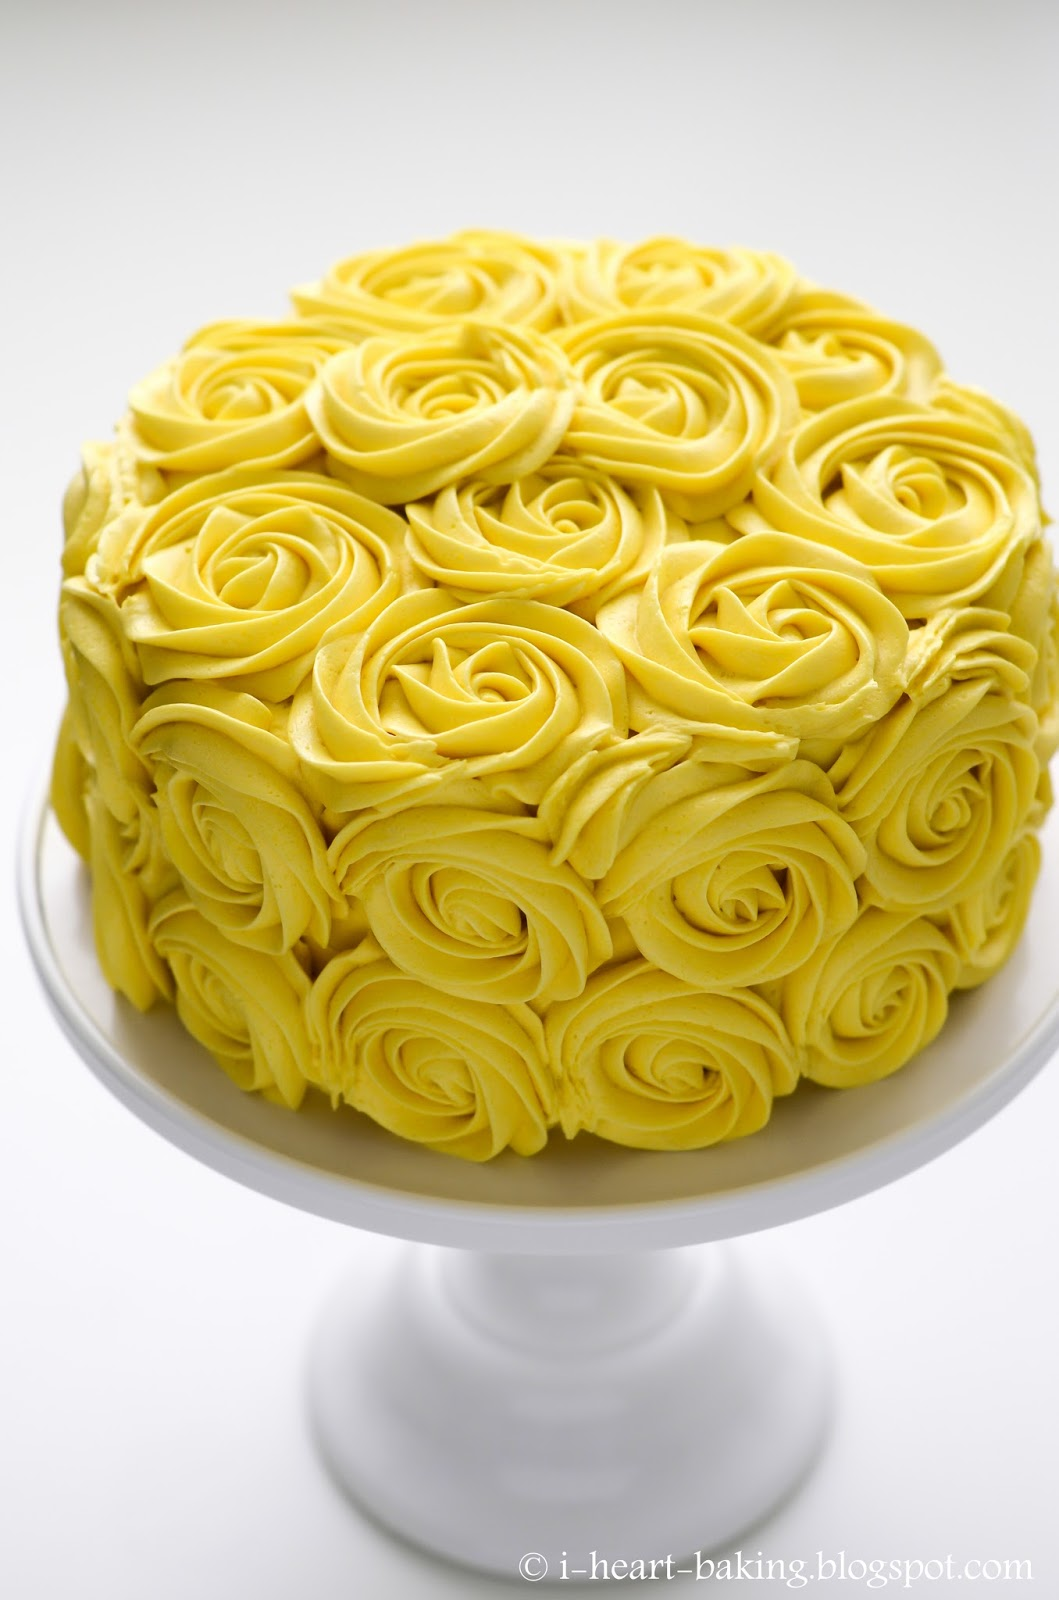 I heart baking yellow roses birthday cake happy birthday to your mom renee i hope she enjoyed her yellow roses this year dhlflorist Images